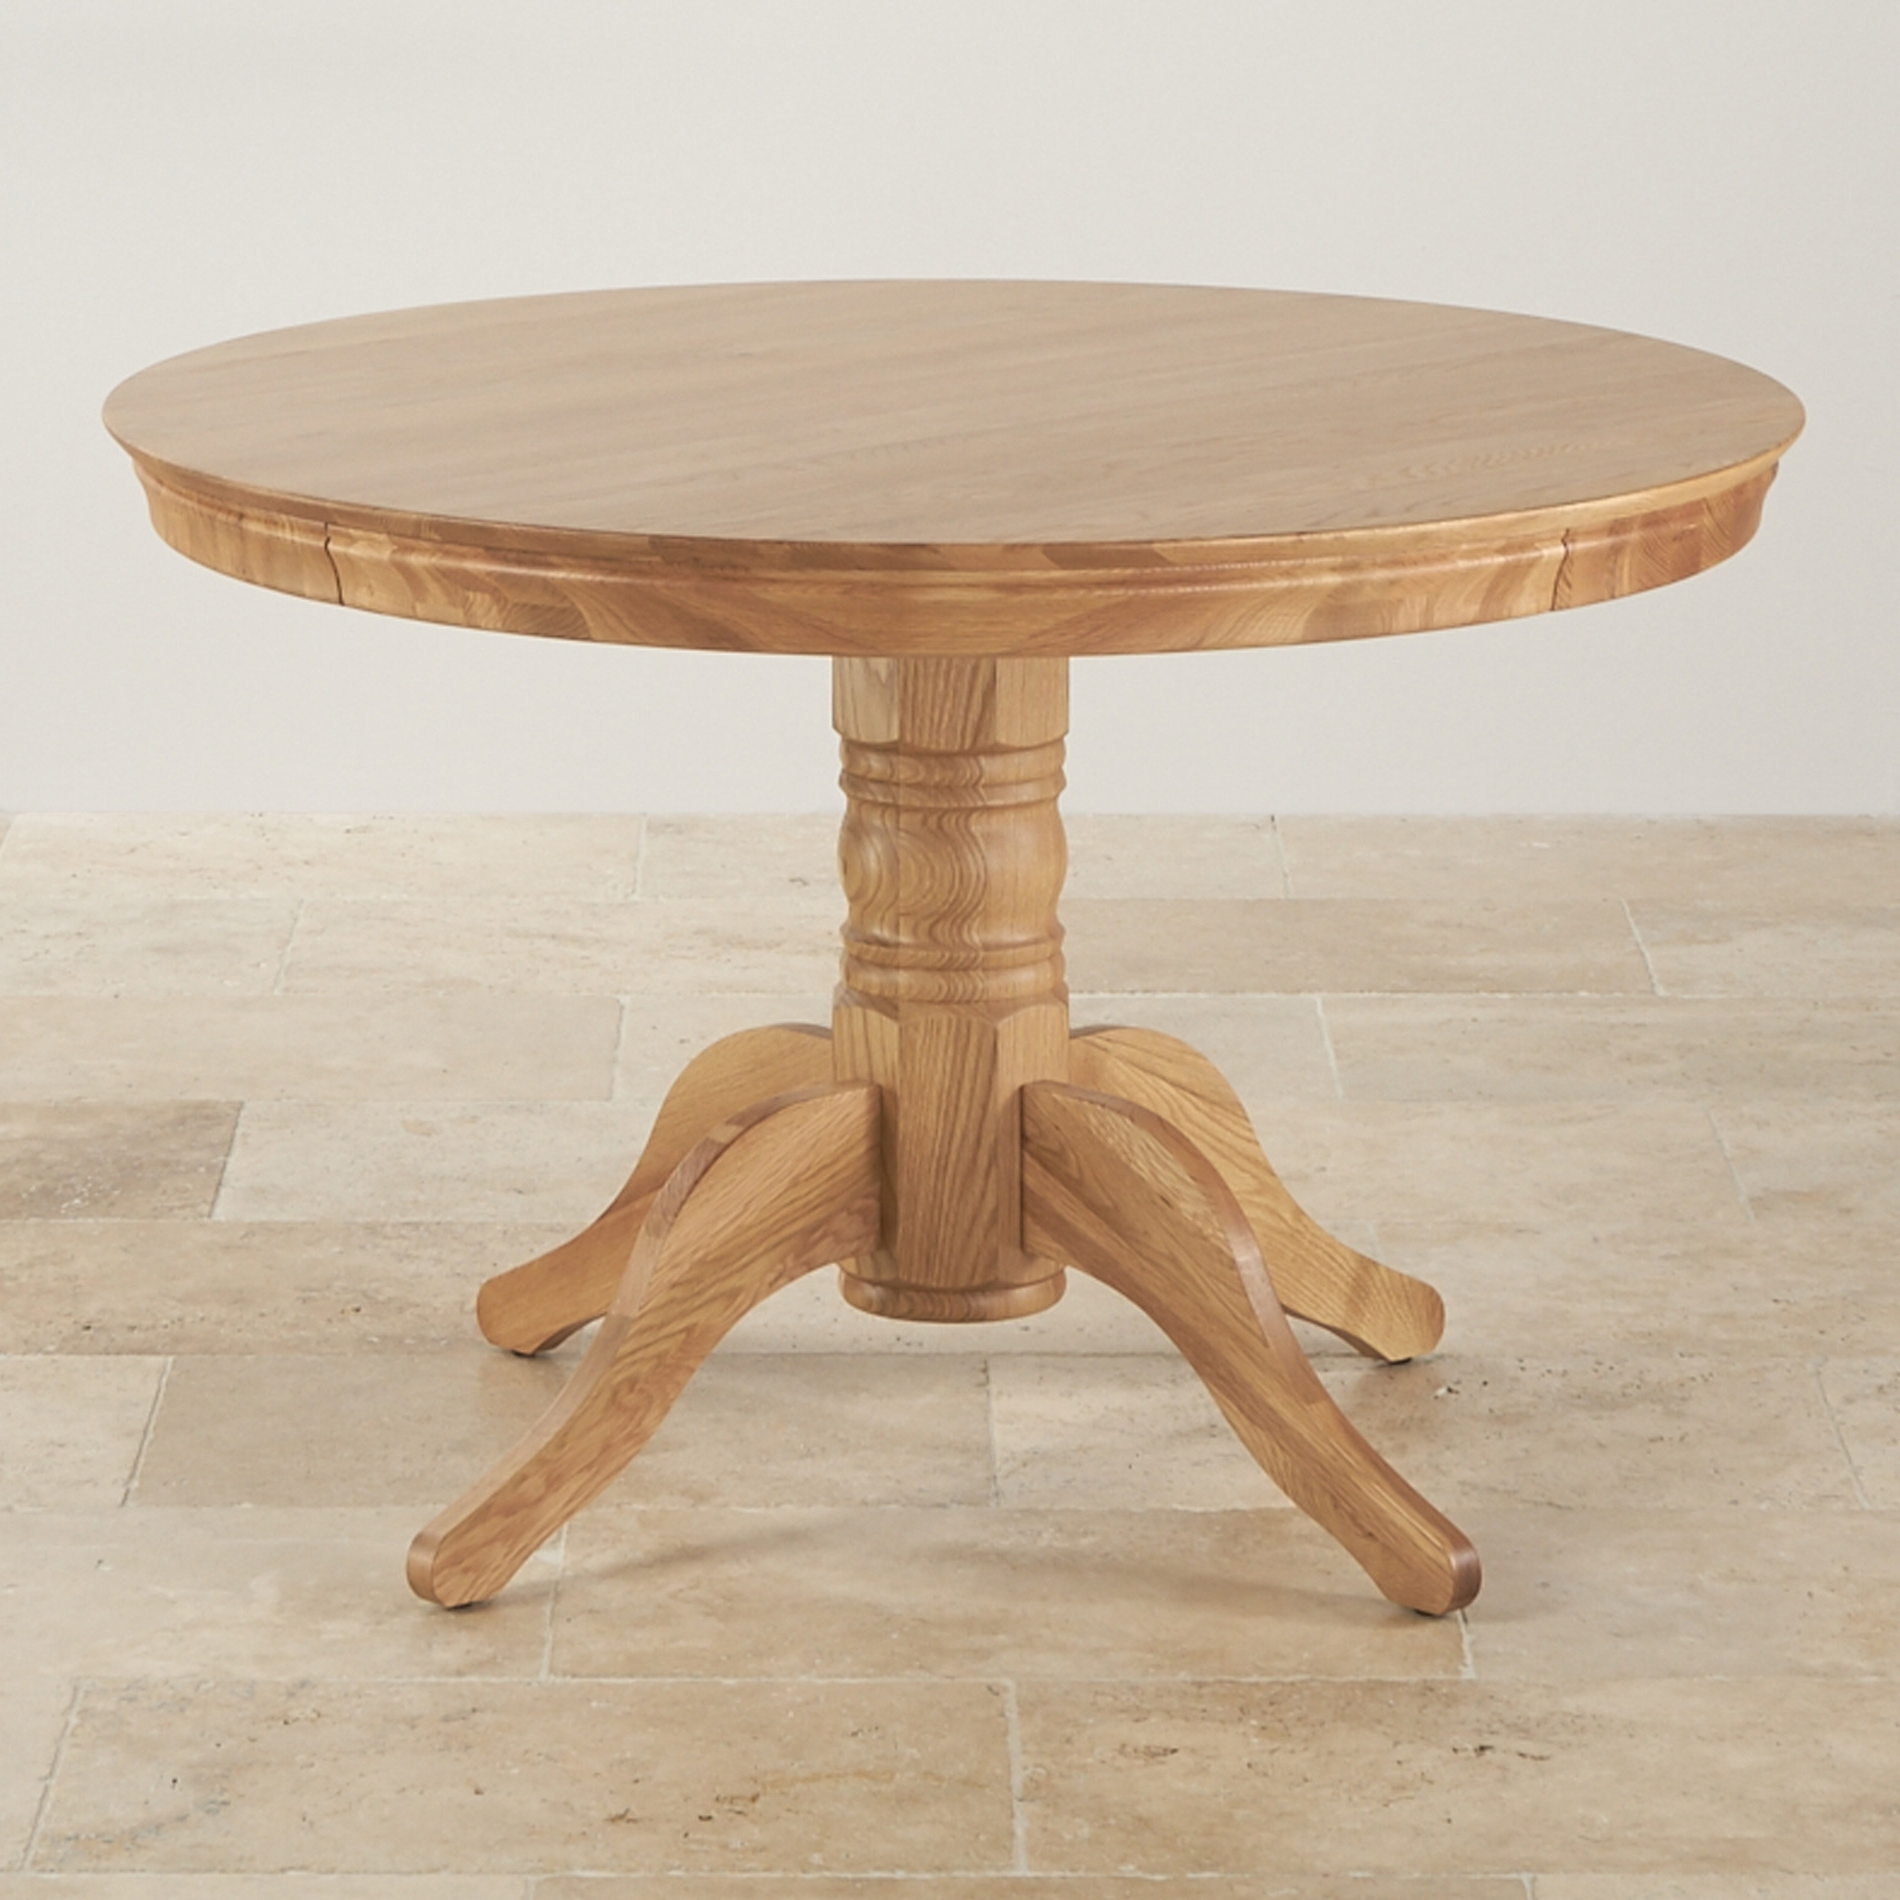 Fashionable Circular Oak Dining Tables With Regard To Qualities Of Oak Dining Tables – Home Decor Ideas (View 5 of 25)